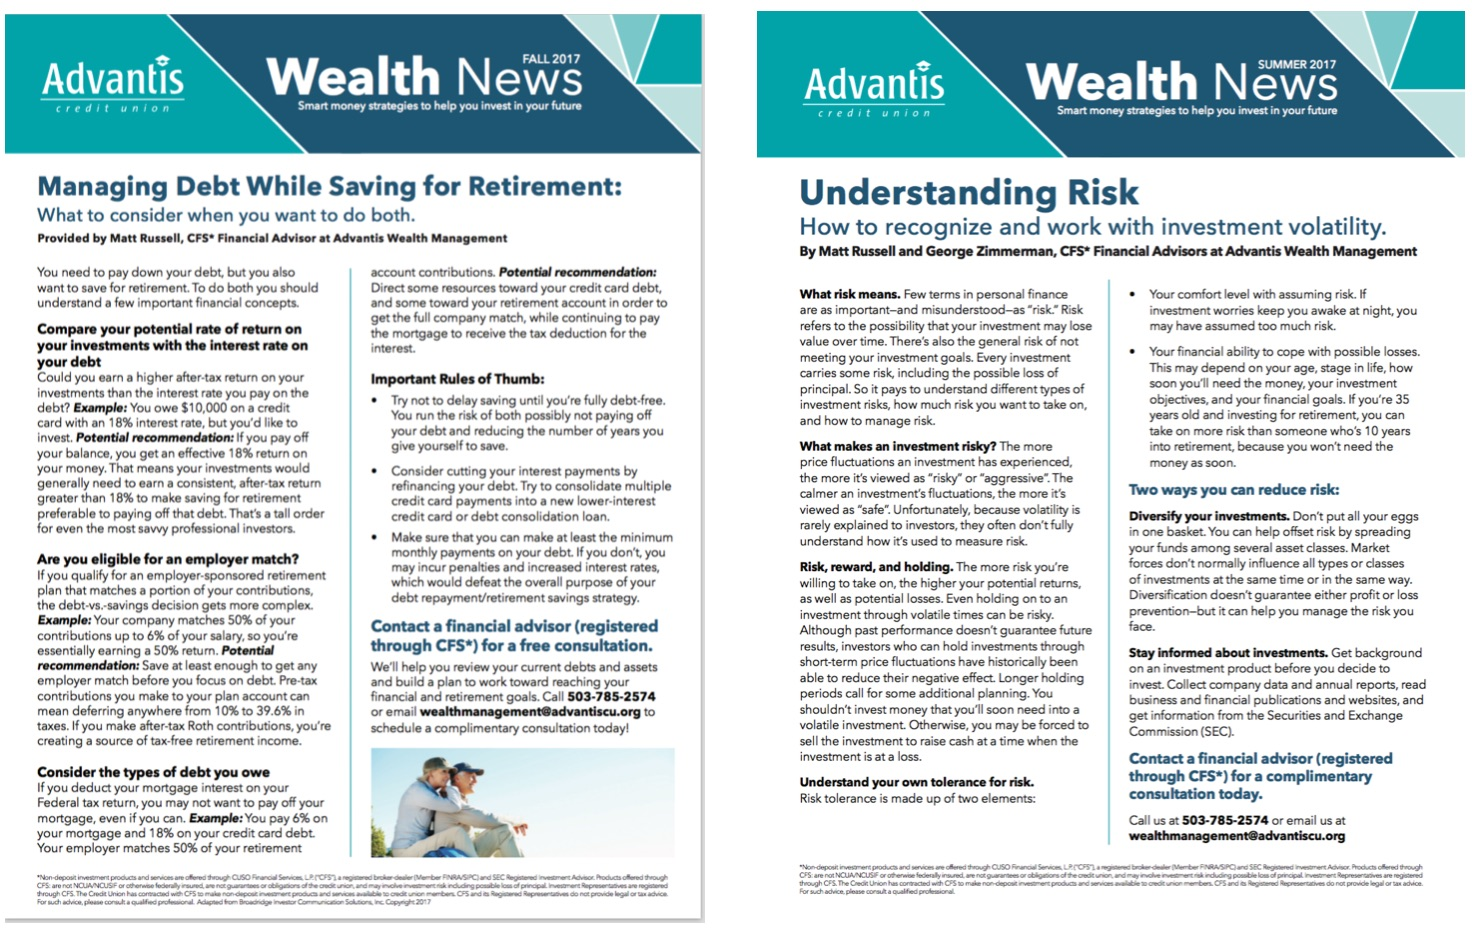 Wealth News 2 issues.jpg